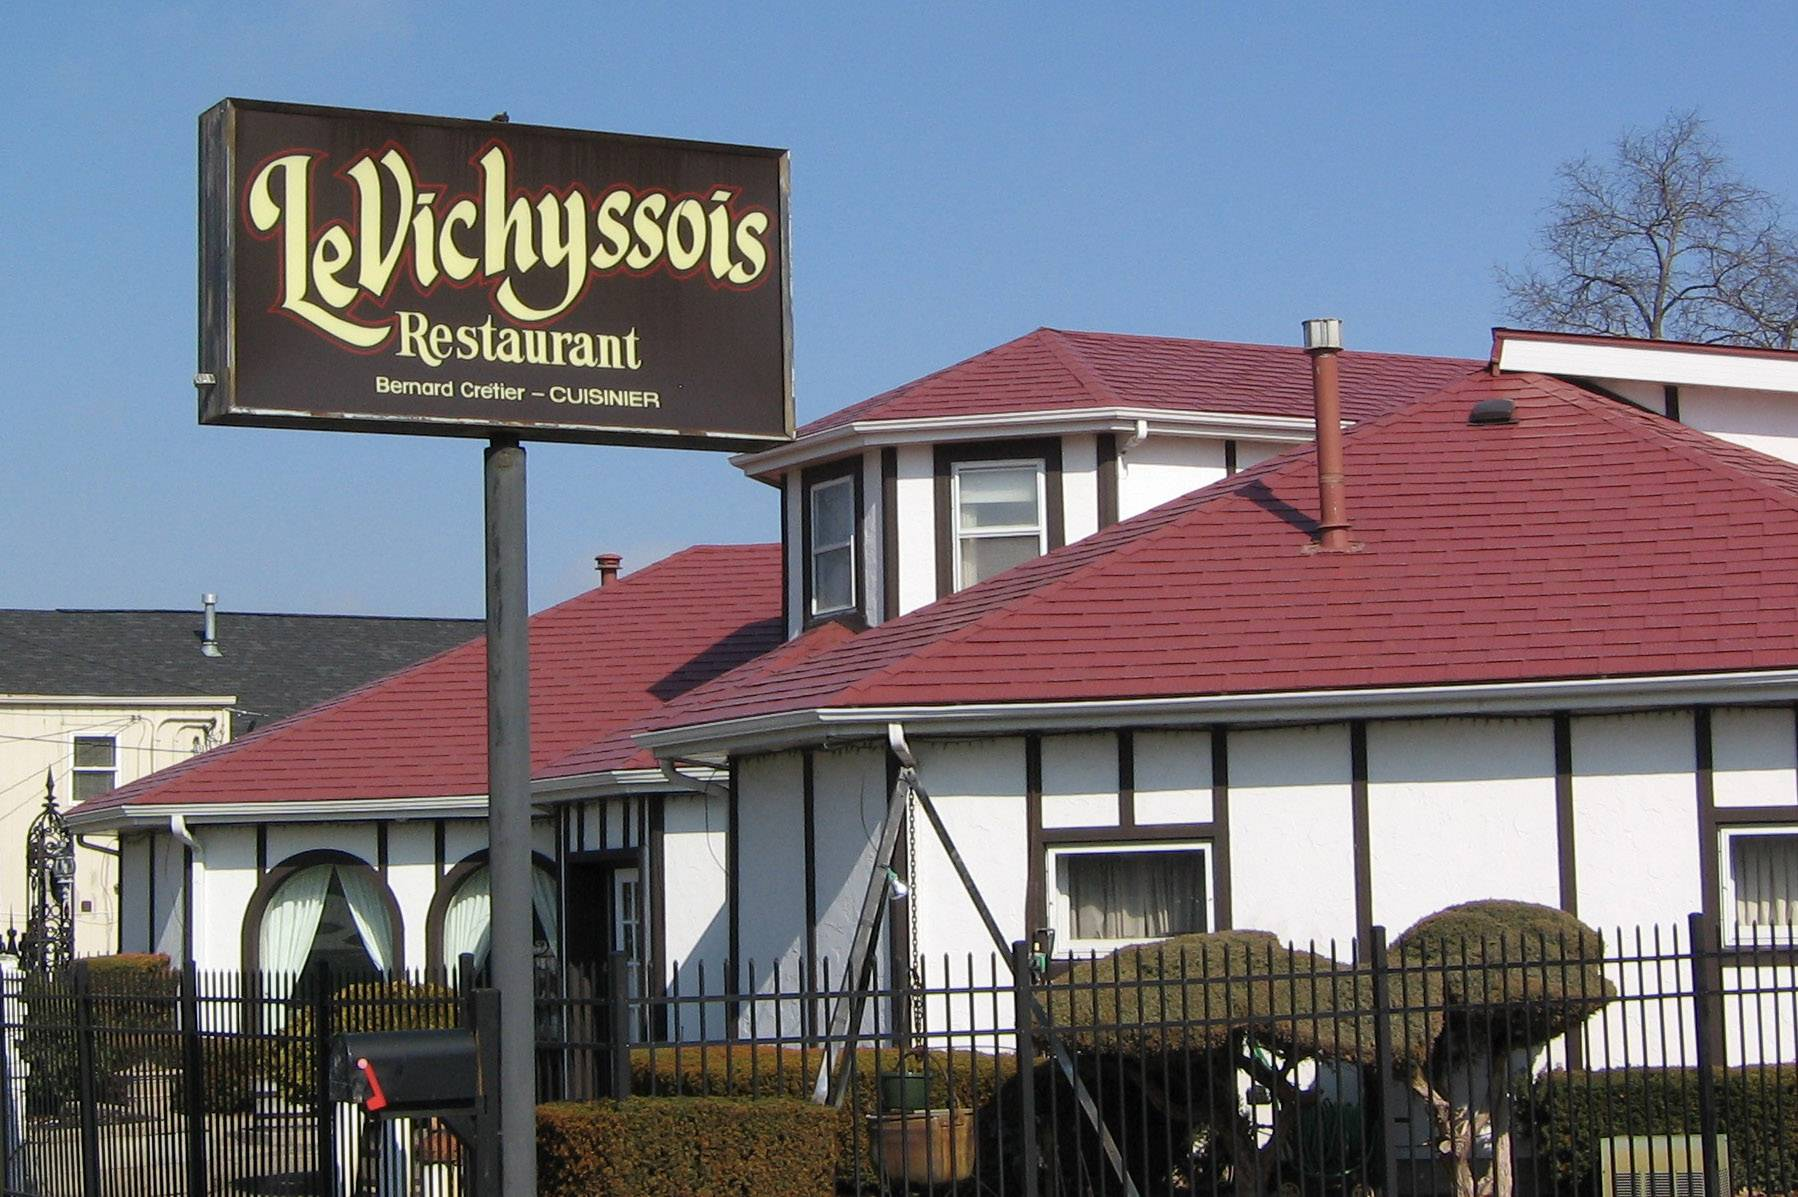 Le Vichyssois French restaurant, which has operated for decades in an unlikely spot along Route 120 in Lakemoor, will close March 30.